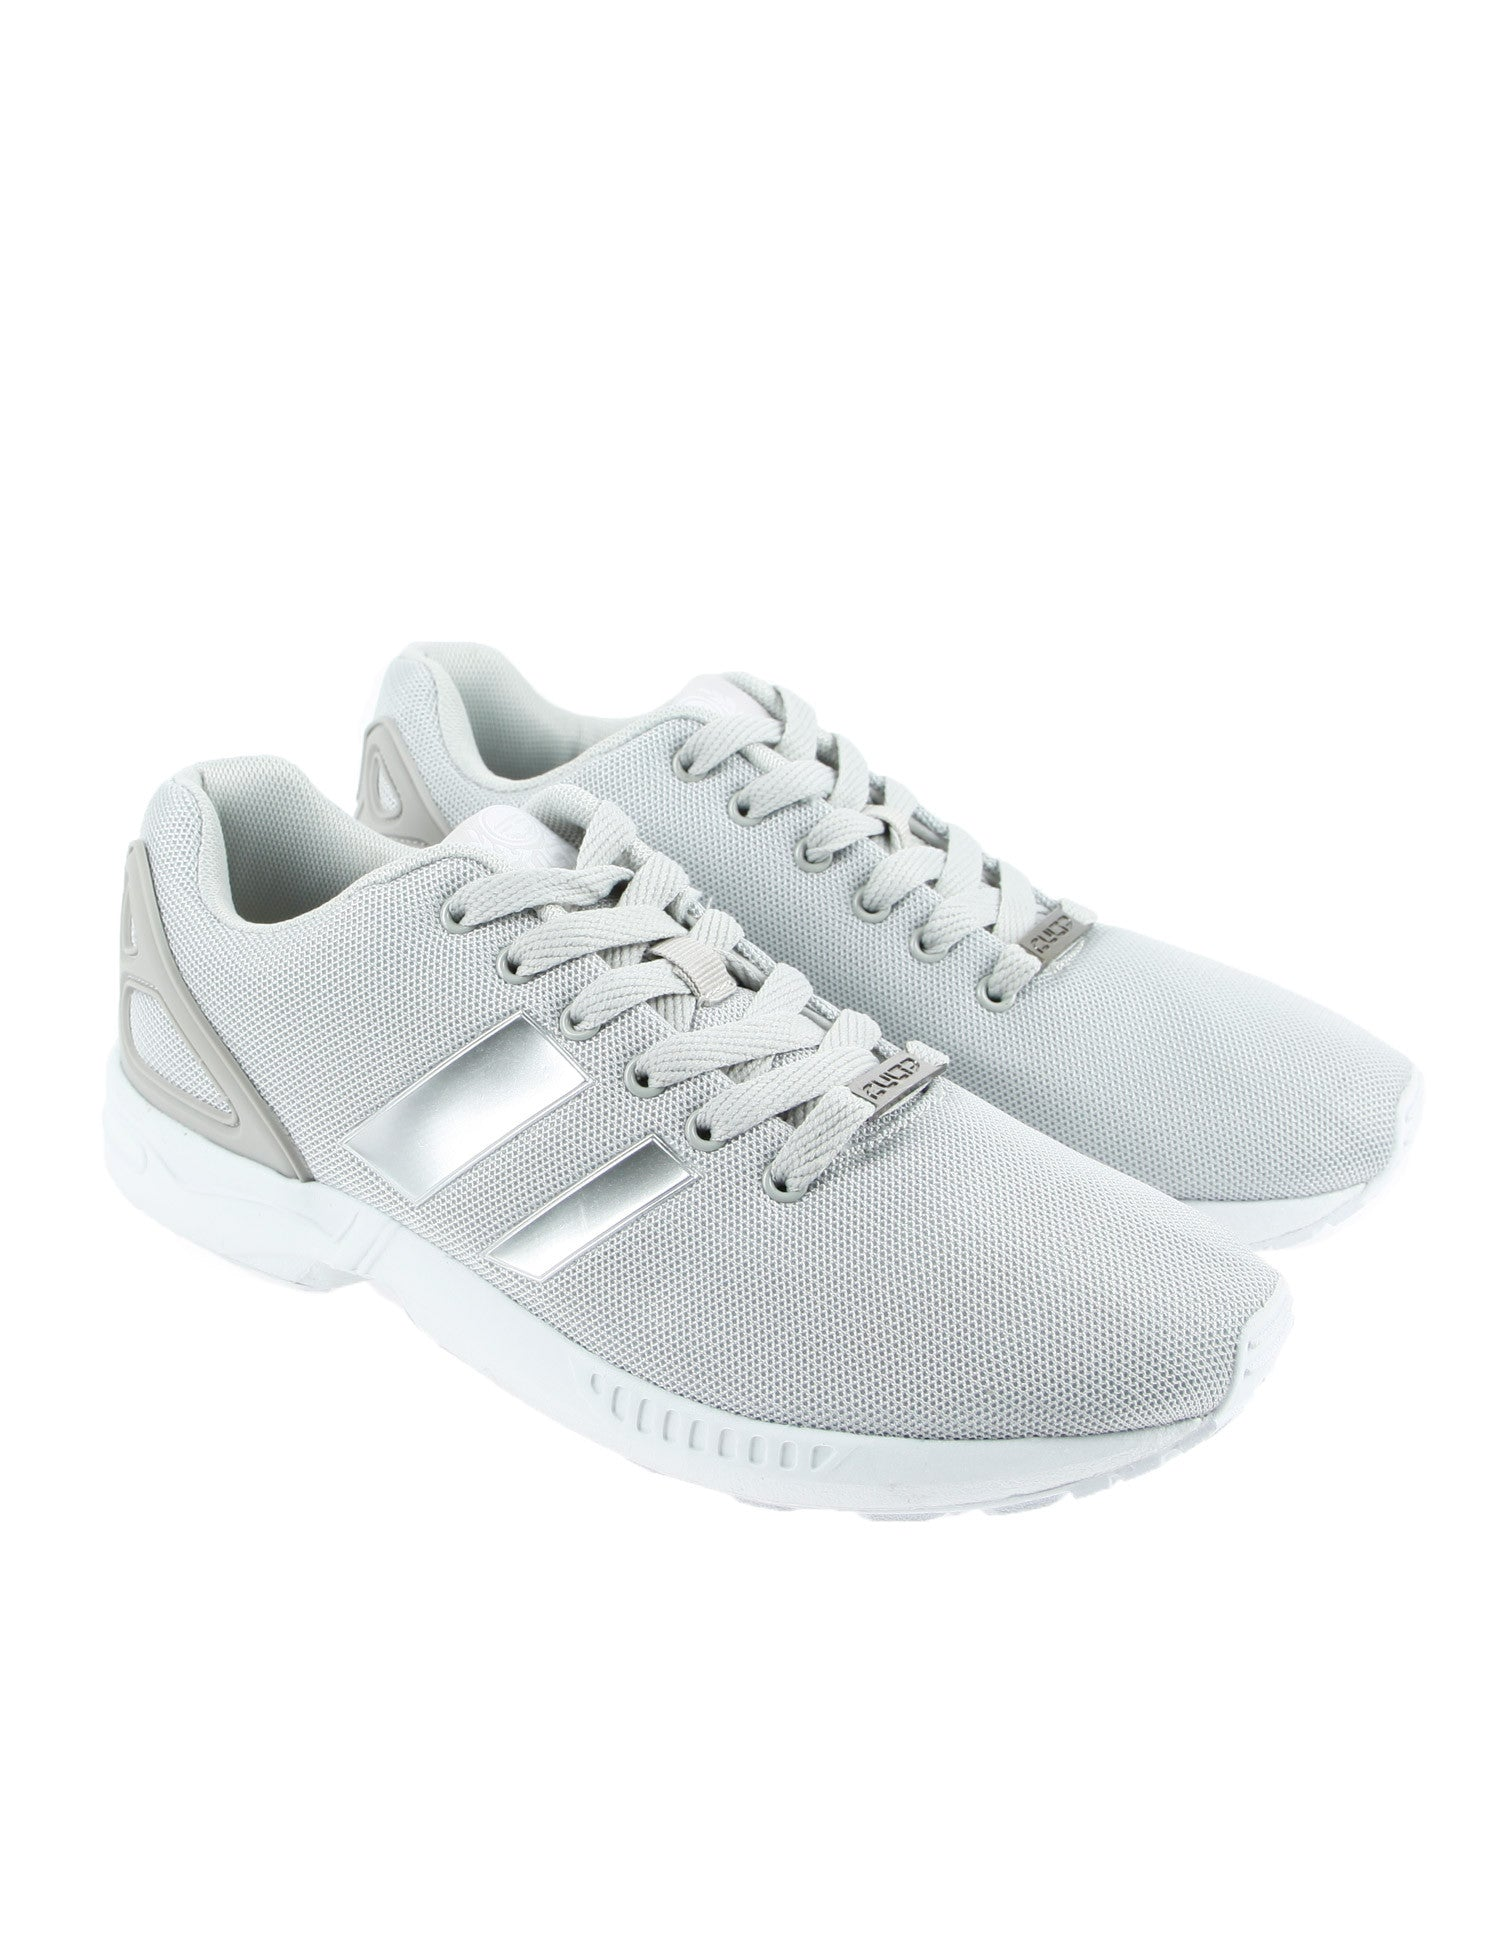 Cultz Shoes 9-6367-1 Grey